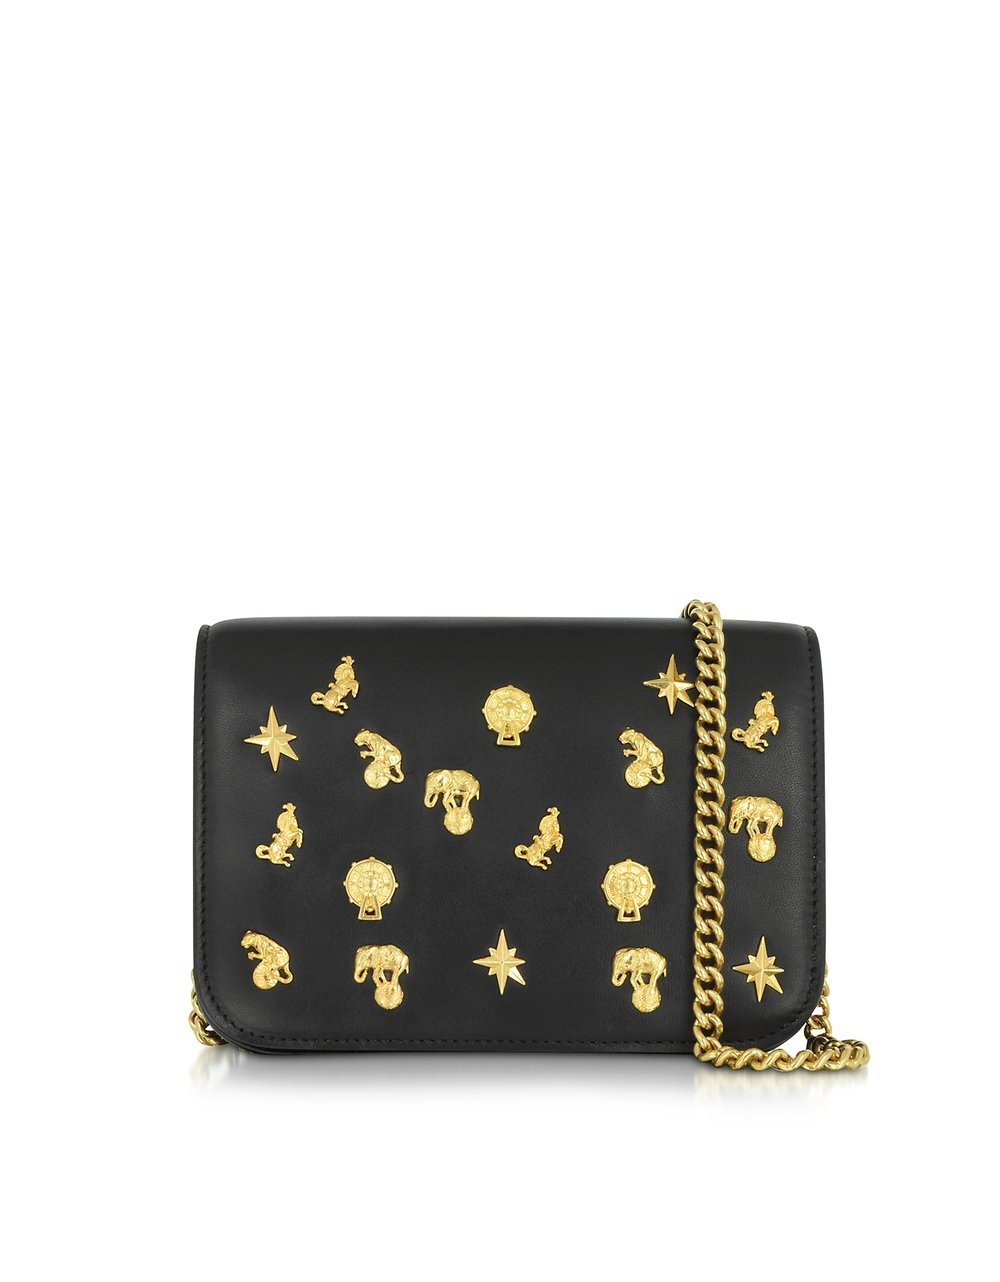 Roberto Cavalli Black Leather Mini Shoulder Bag